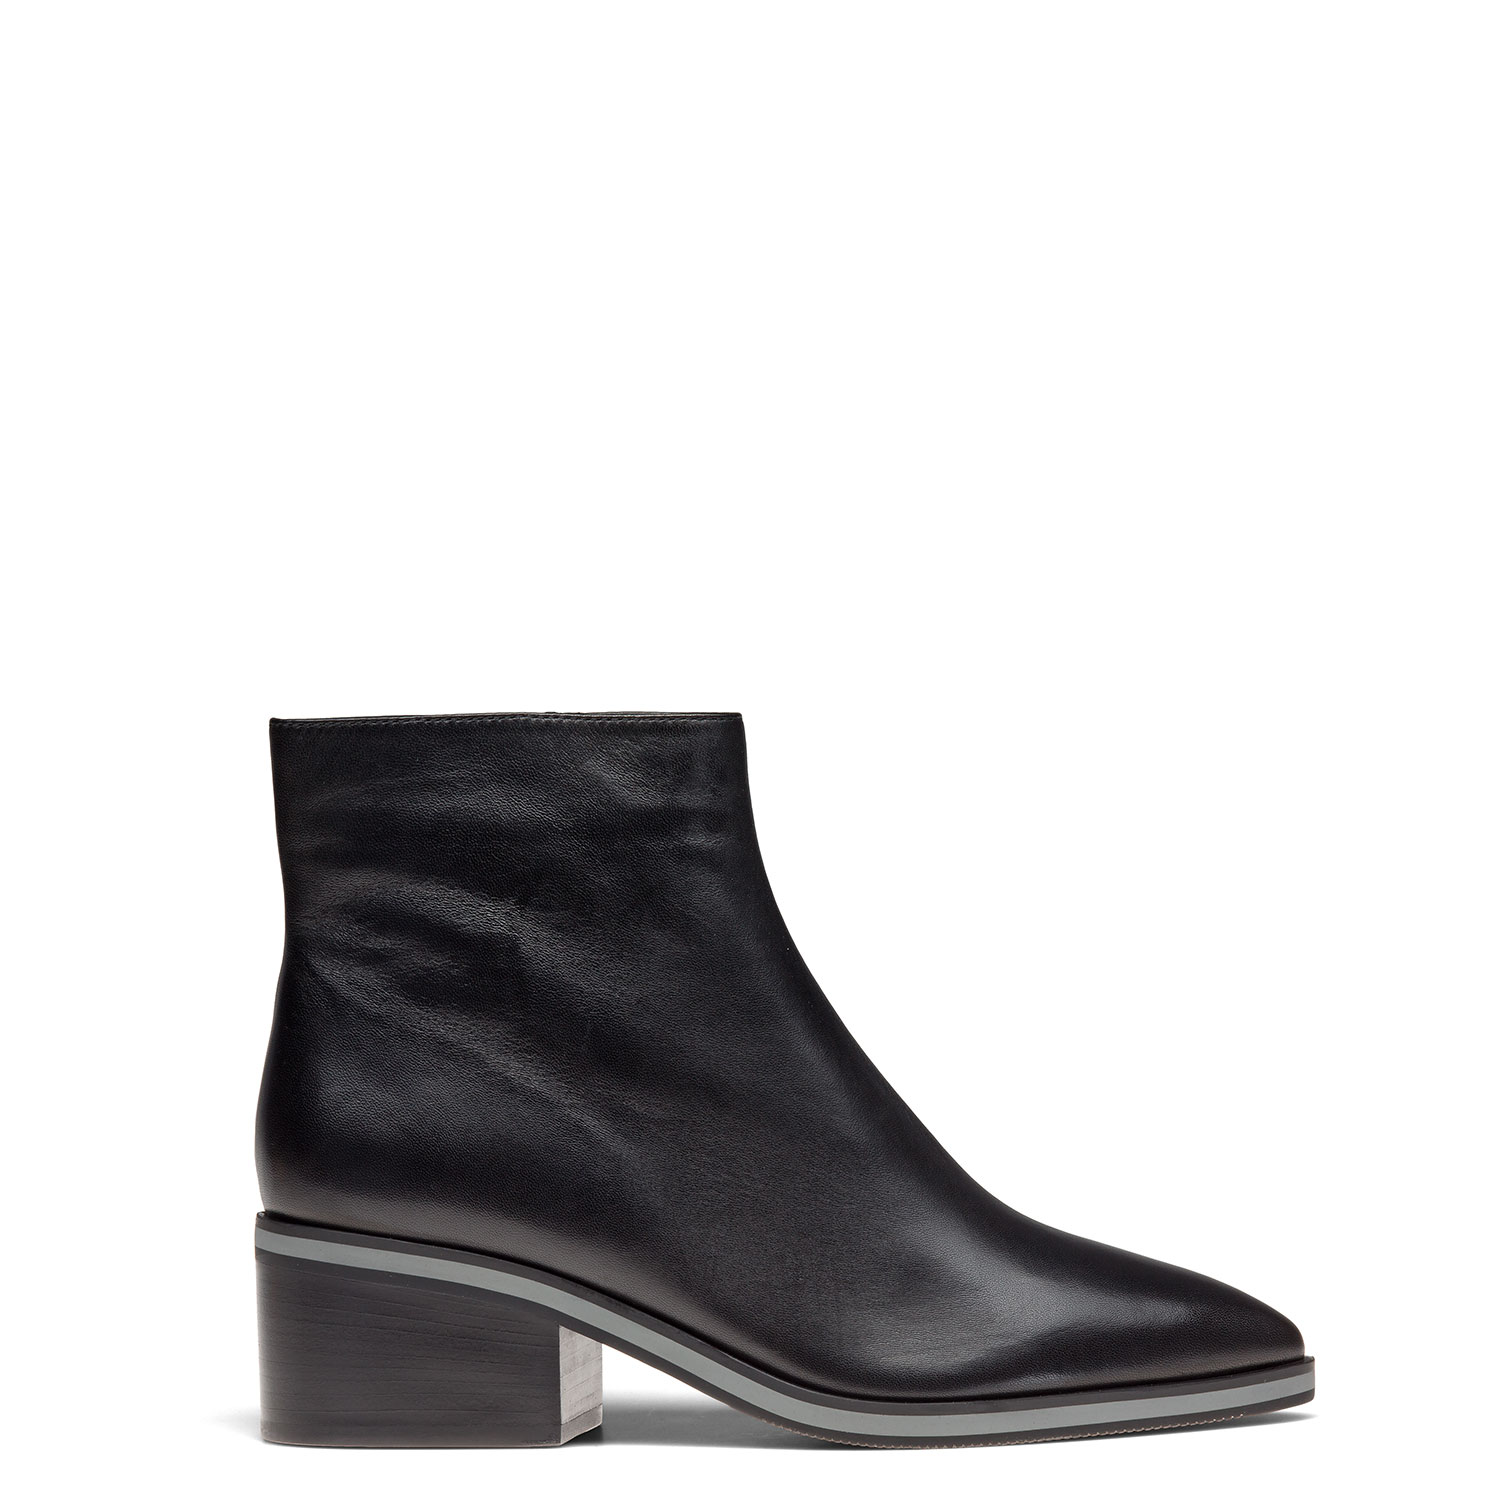 Women's cold weather ankle boots CARLO PAZOLINI FL-JON2-1